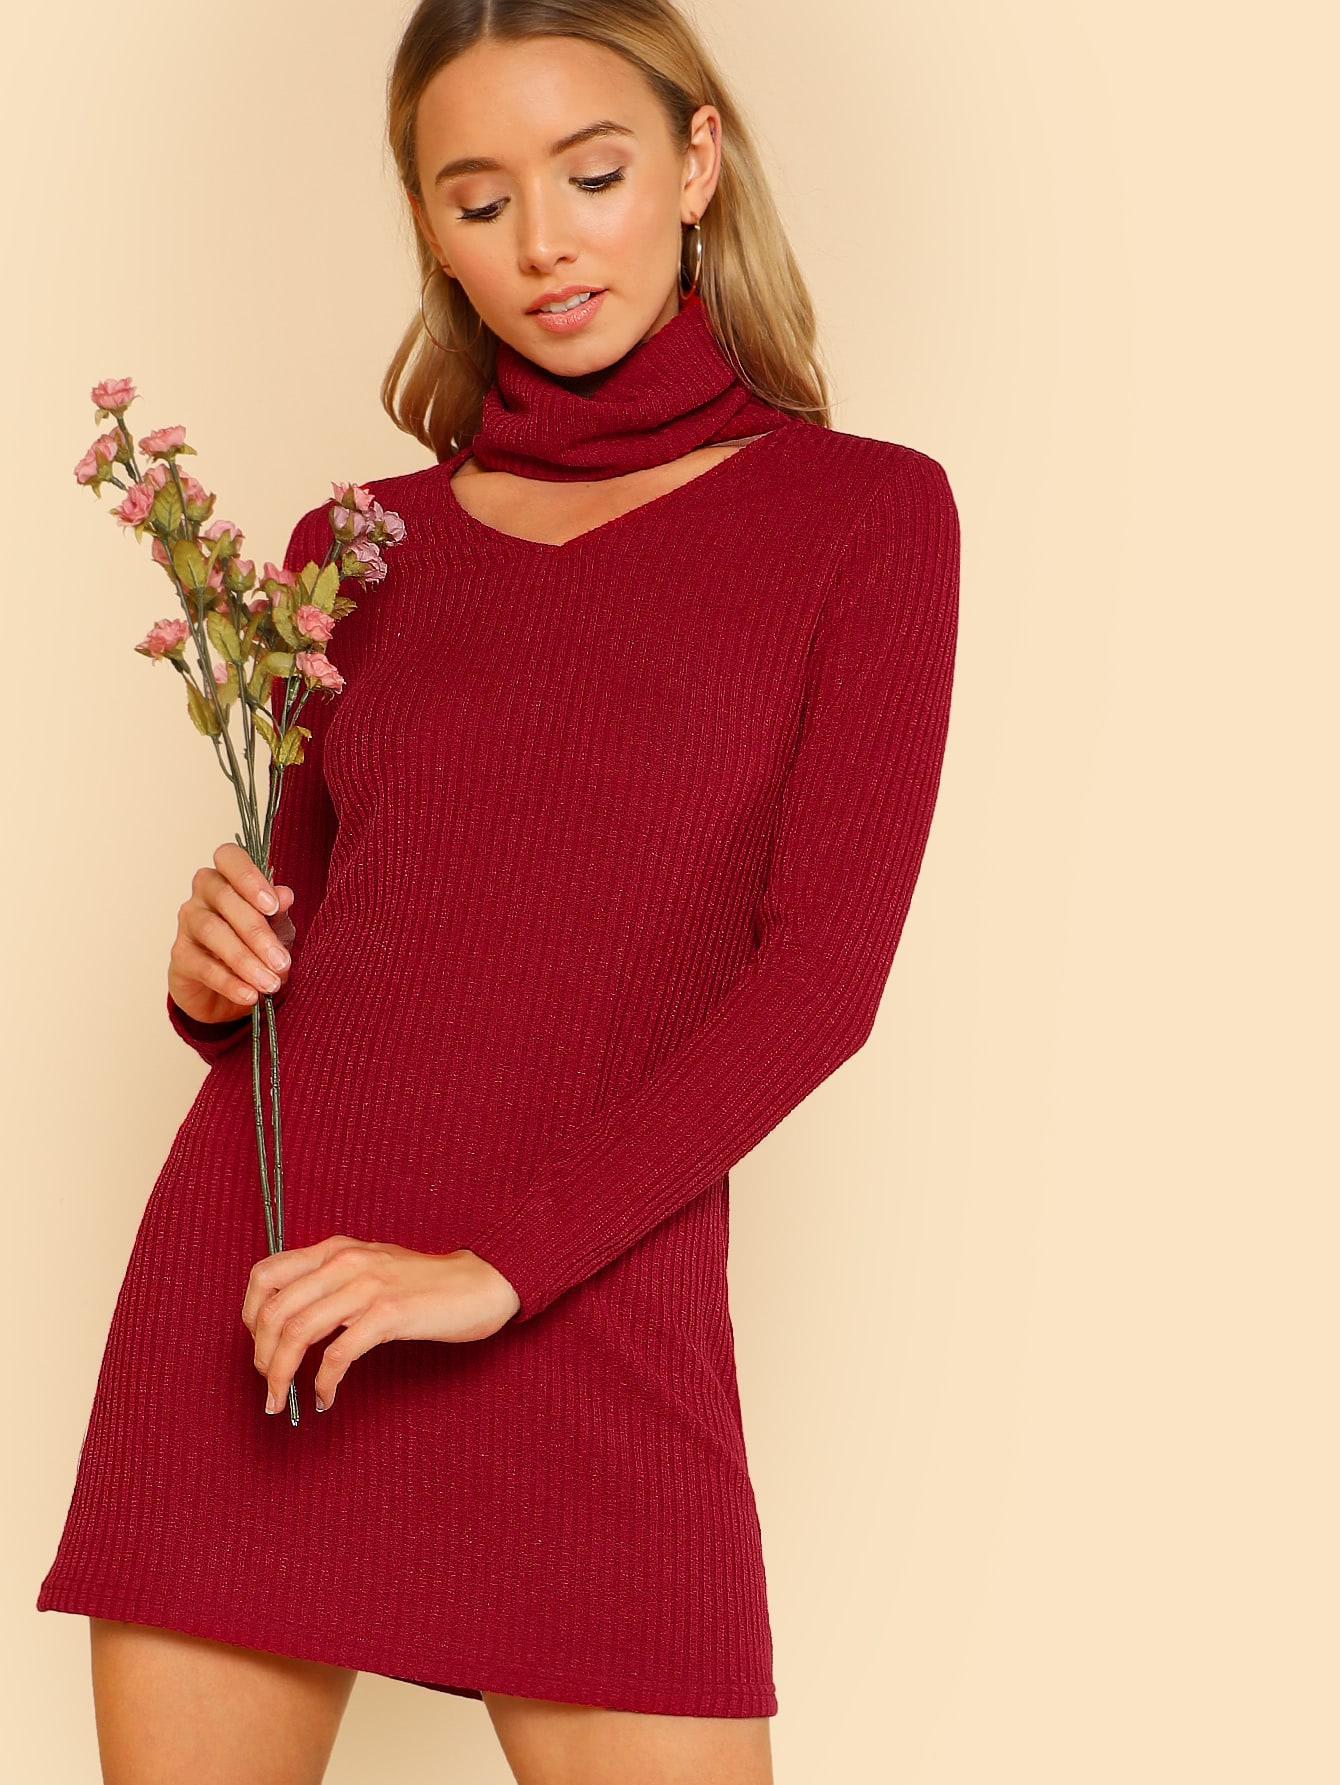 Front Cutout Turtleneck Dress lg 49uj670v телевизор